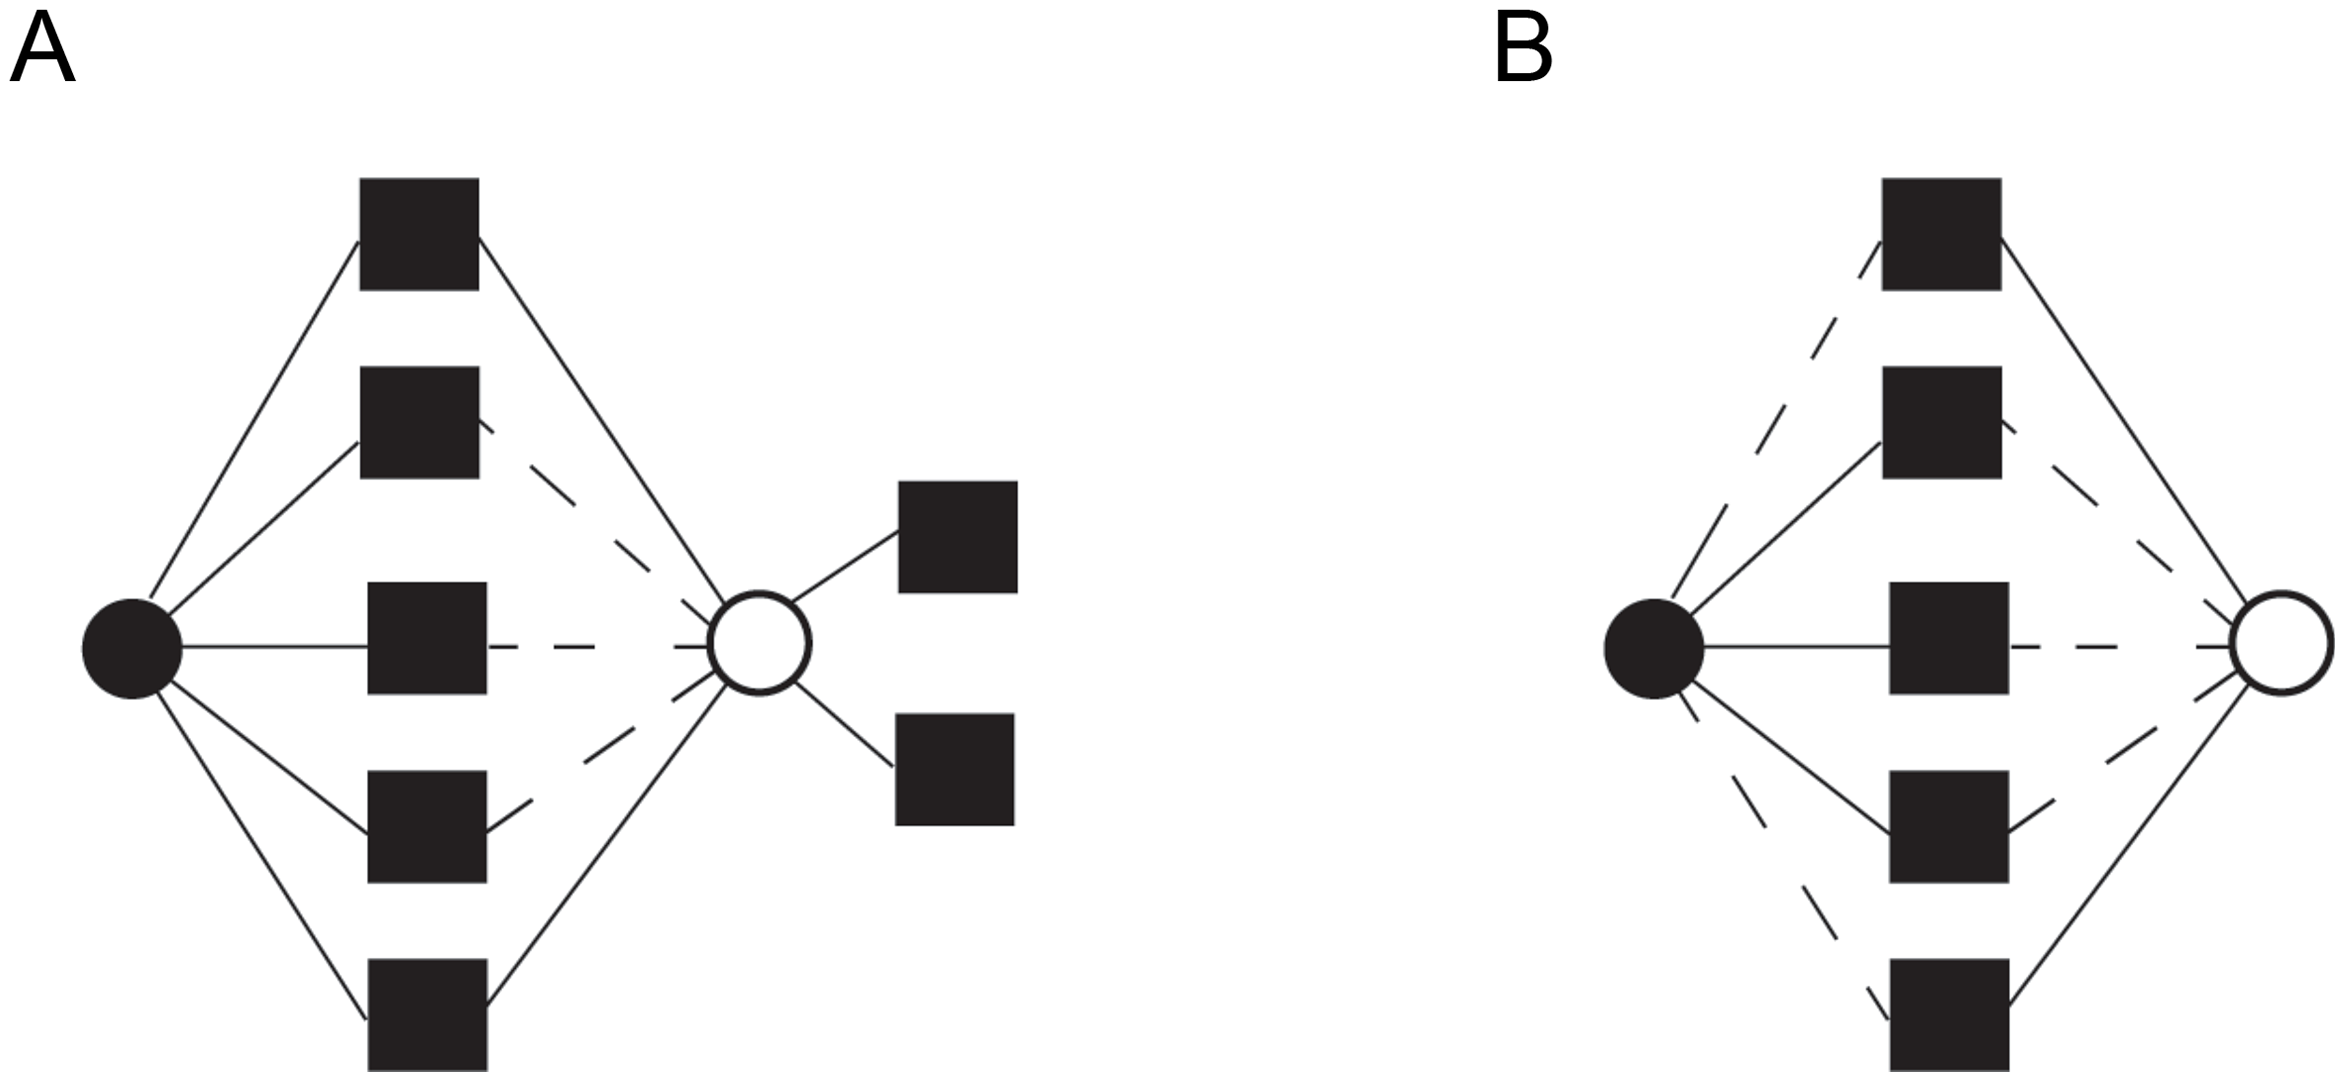 Distinct functional fates for genes duplicated by small-scale duplication (SSD) and whole-genome duplication (WGD).